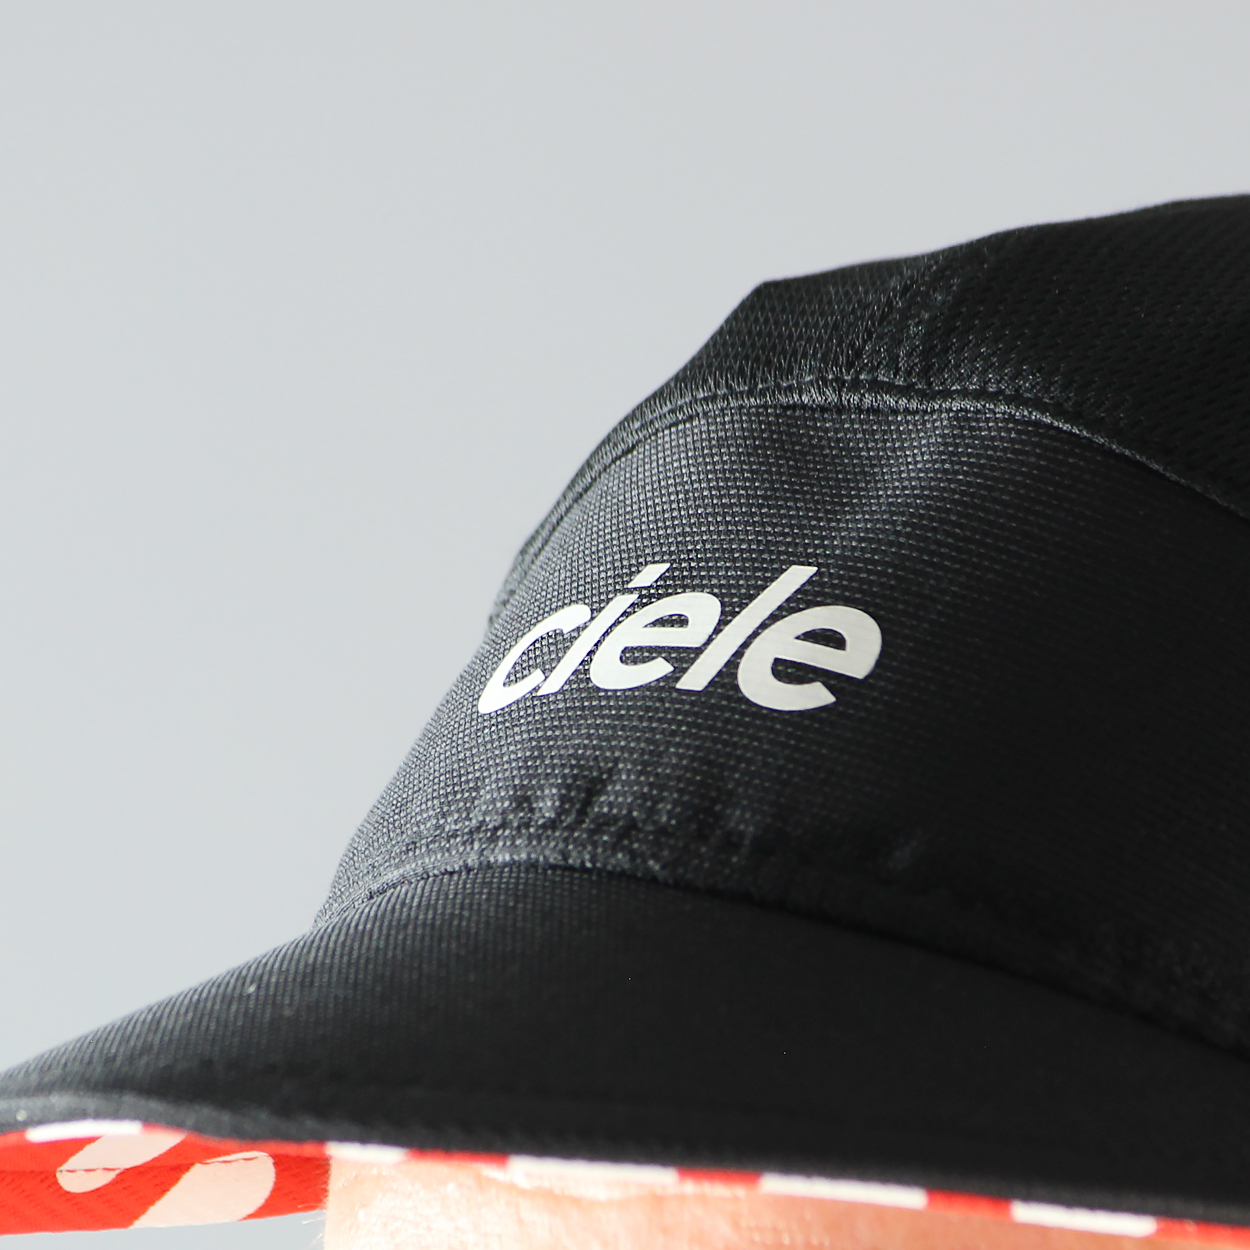 c00304995957d The Fast Cap from Ciele Athletics is a lightweight and quick drying hat  which features reflective detailing and a  fast fit  which has a slightly  lower ...